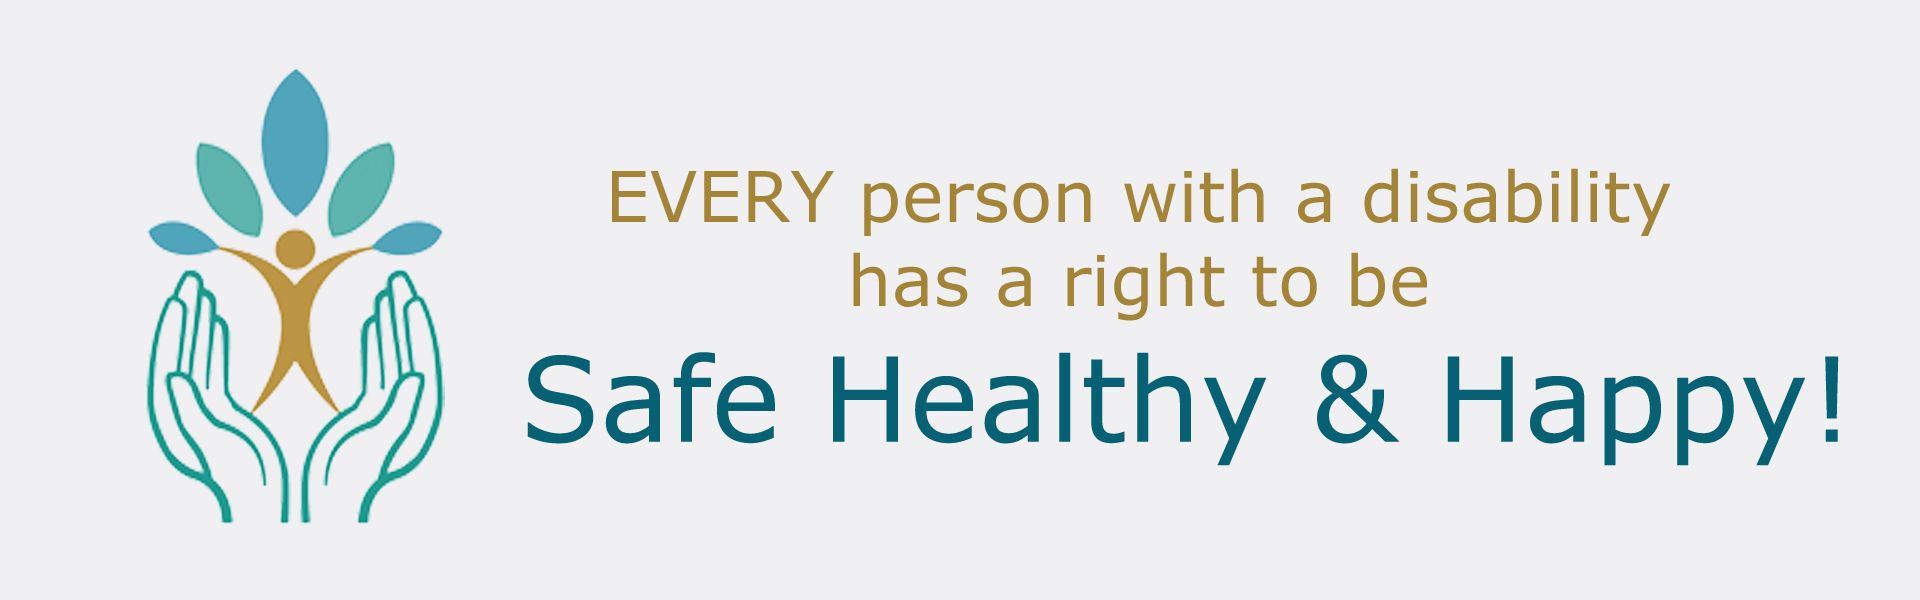 Logo of two hands holding up a person with text saying Every person with a disability has a right to be safe healthy and happy